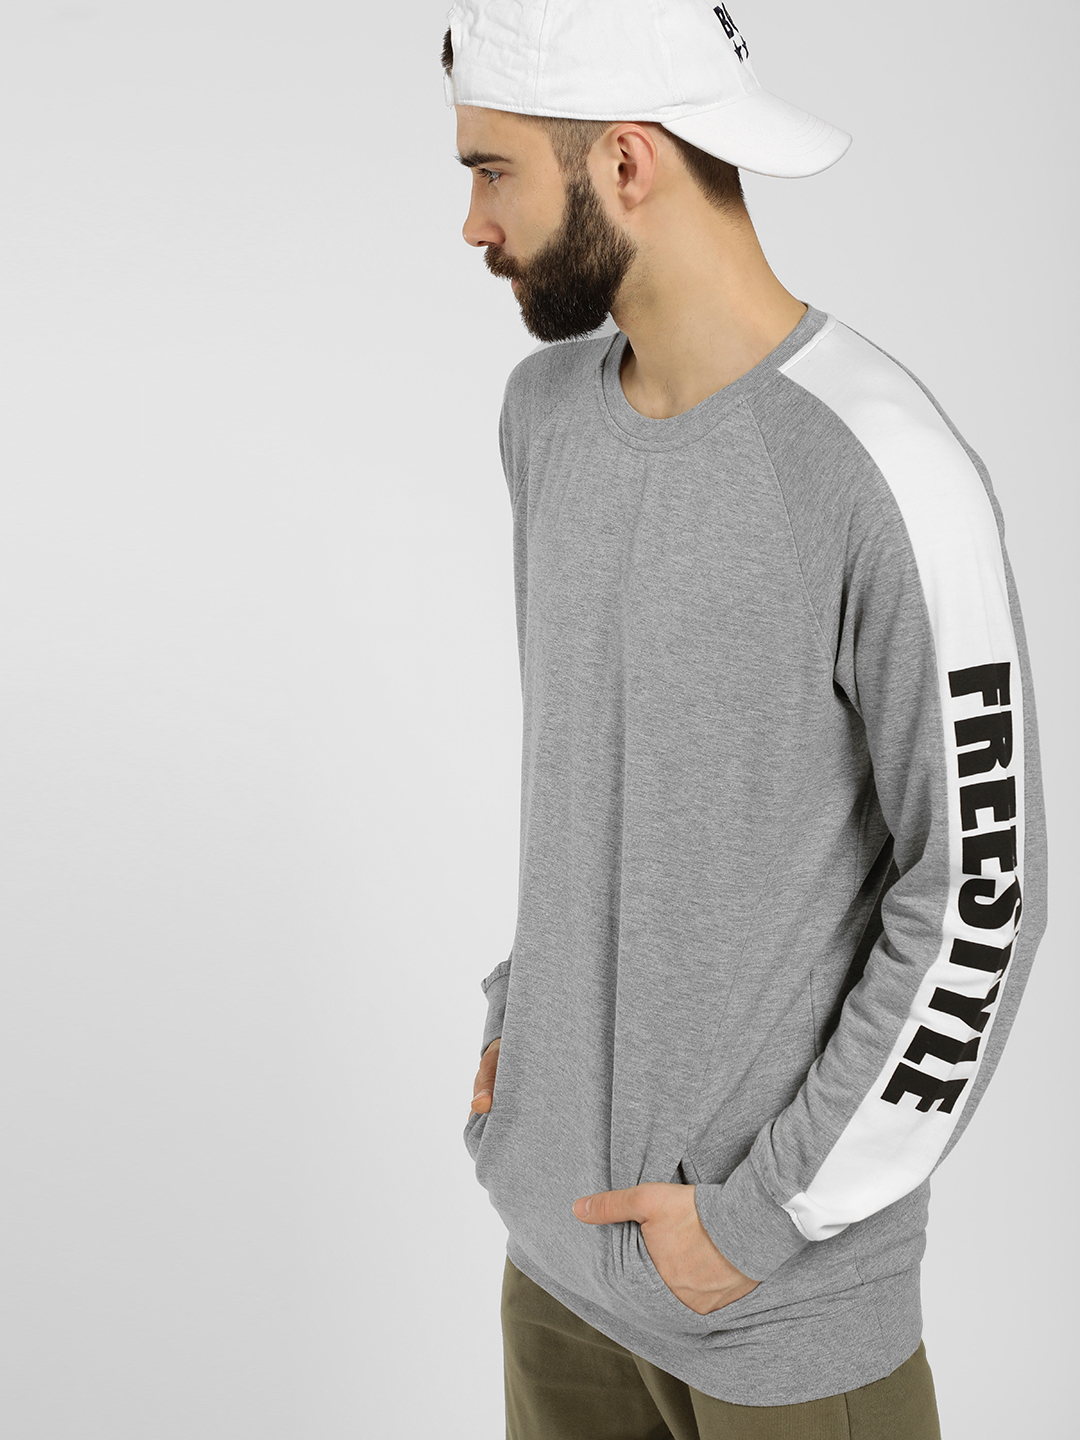 SKULT By Shahid Kapoor Grey Side Text Tape Sweatshirt 1